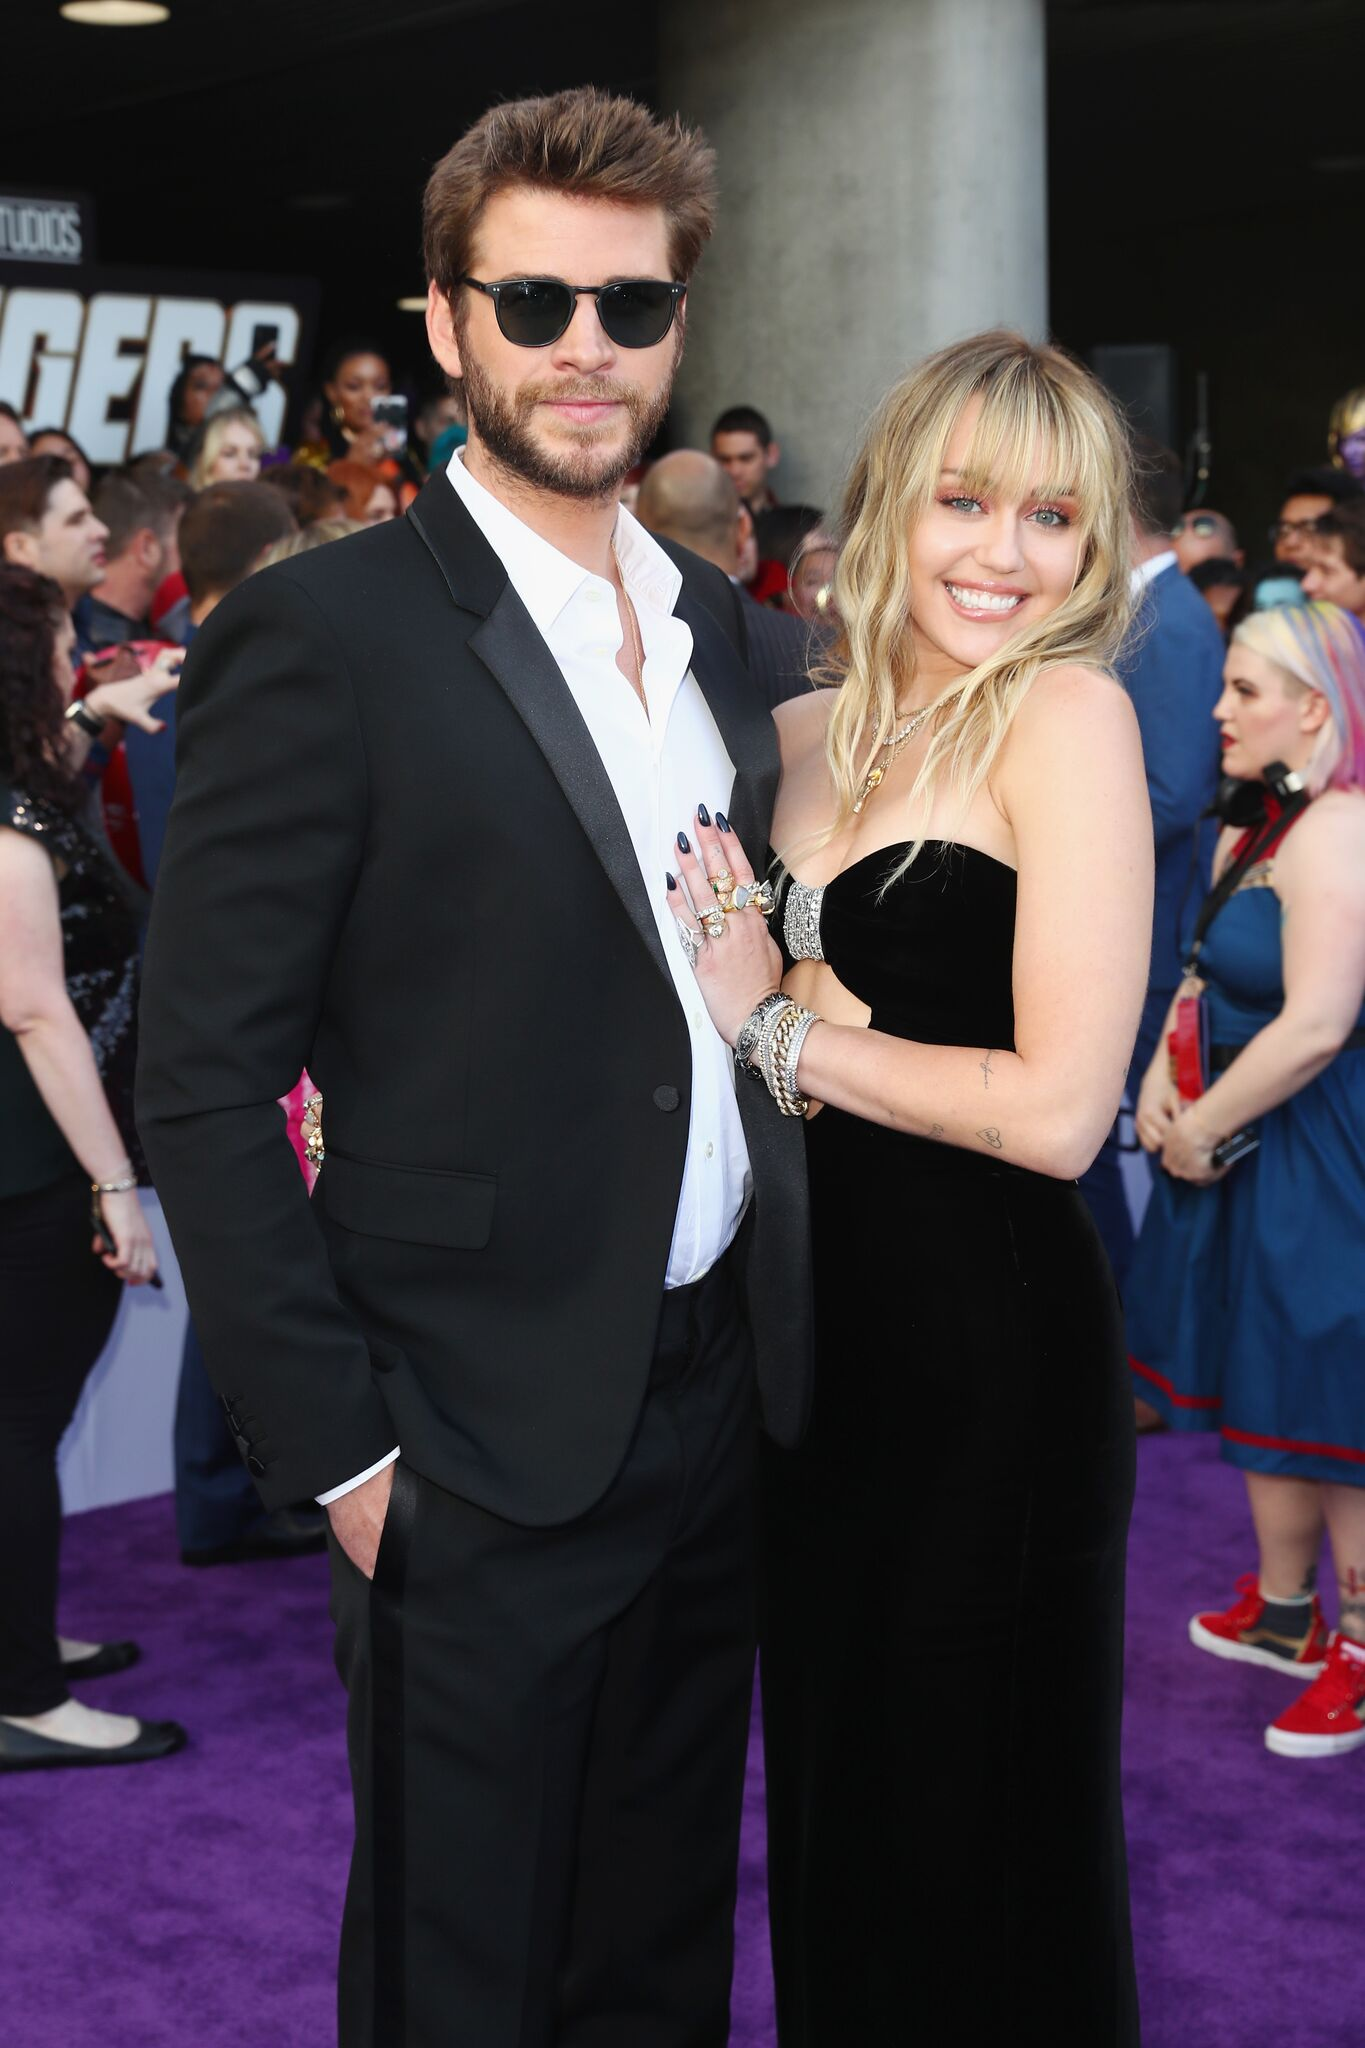 """Liam Hemsworth and Miley Cyrus attend Audi Arrives At The World Premiere Of """"Avengers: Endgame"""" on April 22, 2019  l Getty Images"""